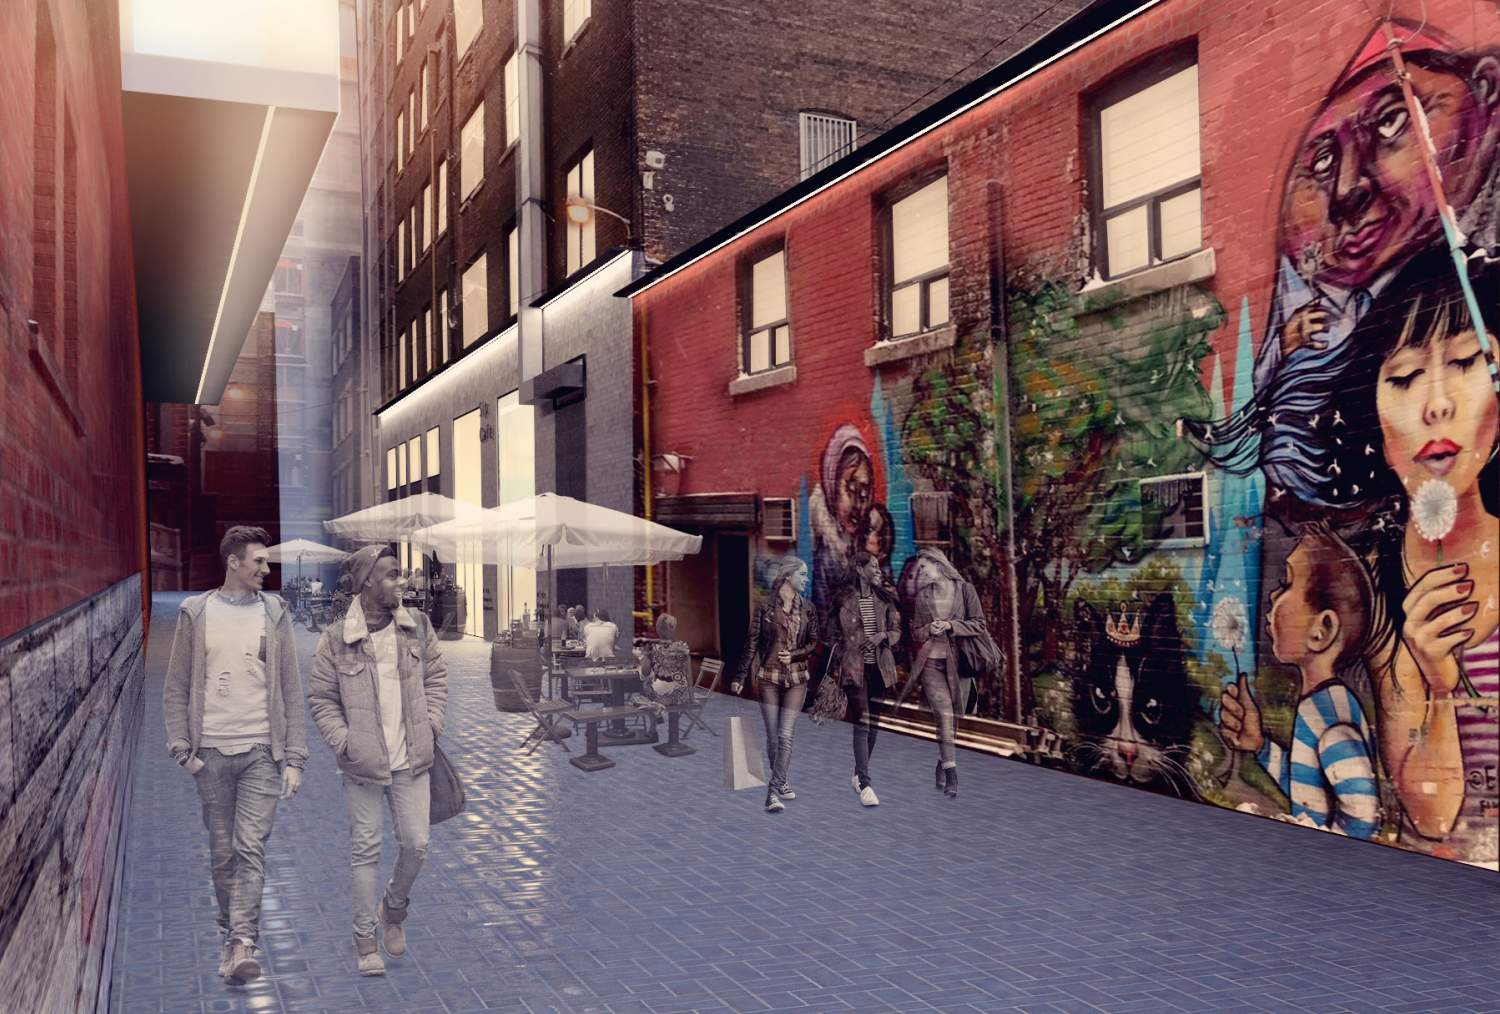 Rendering of wide pathway with pedestrians lined by buildings